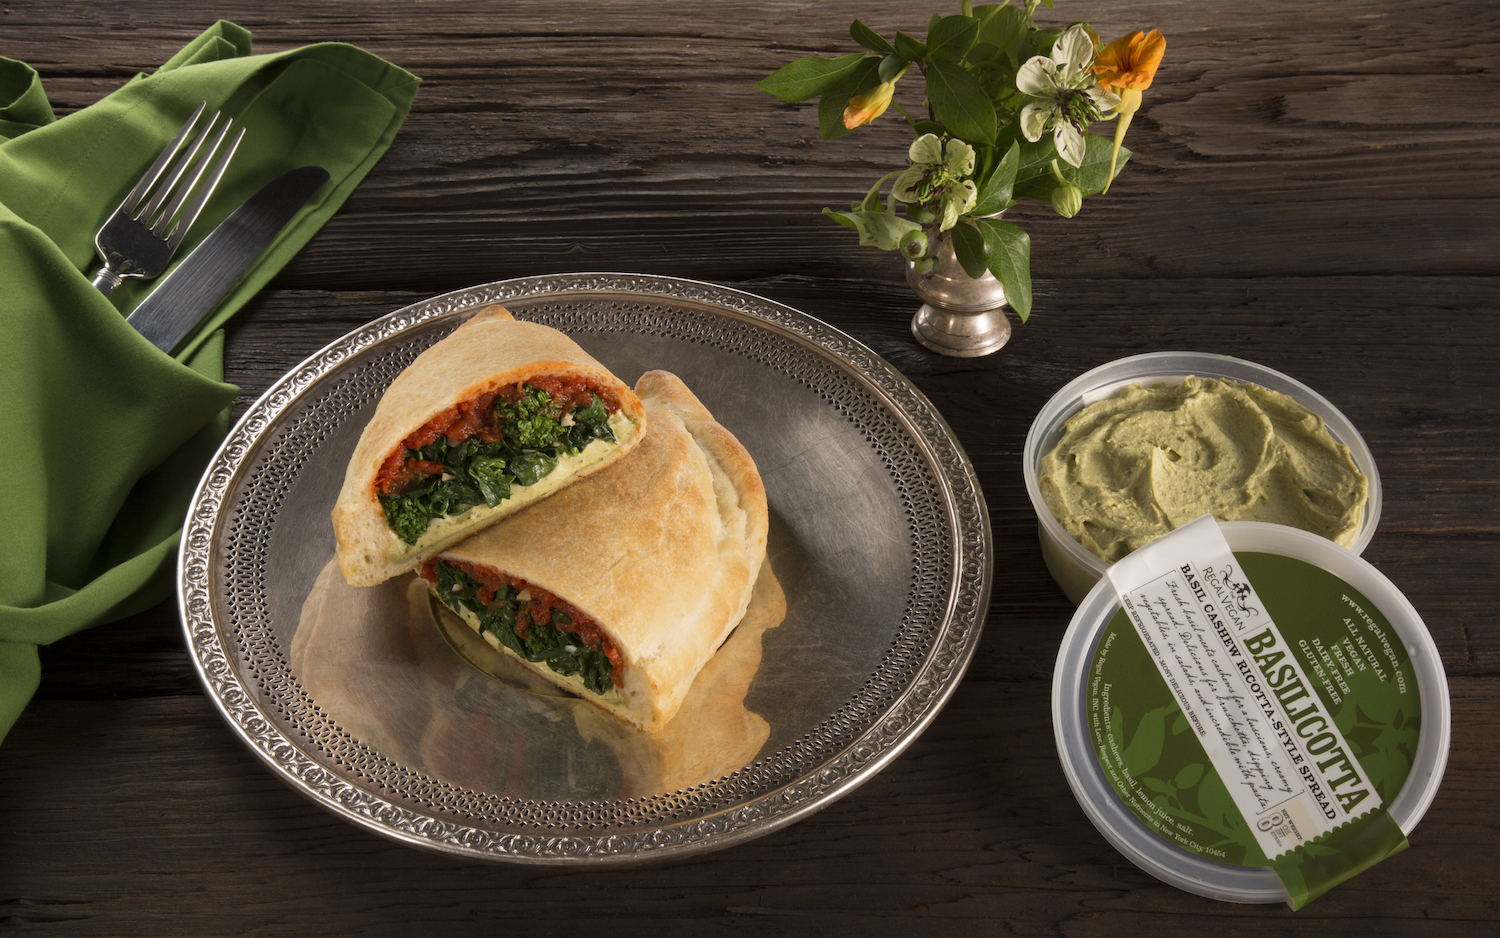 Regal Vegan Basilicotta™ & Broccoli Rabe Calzones